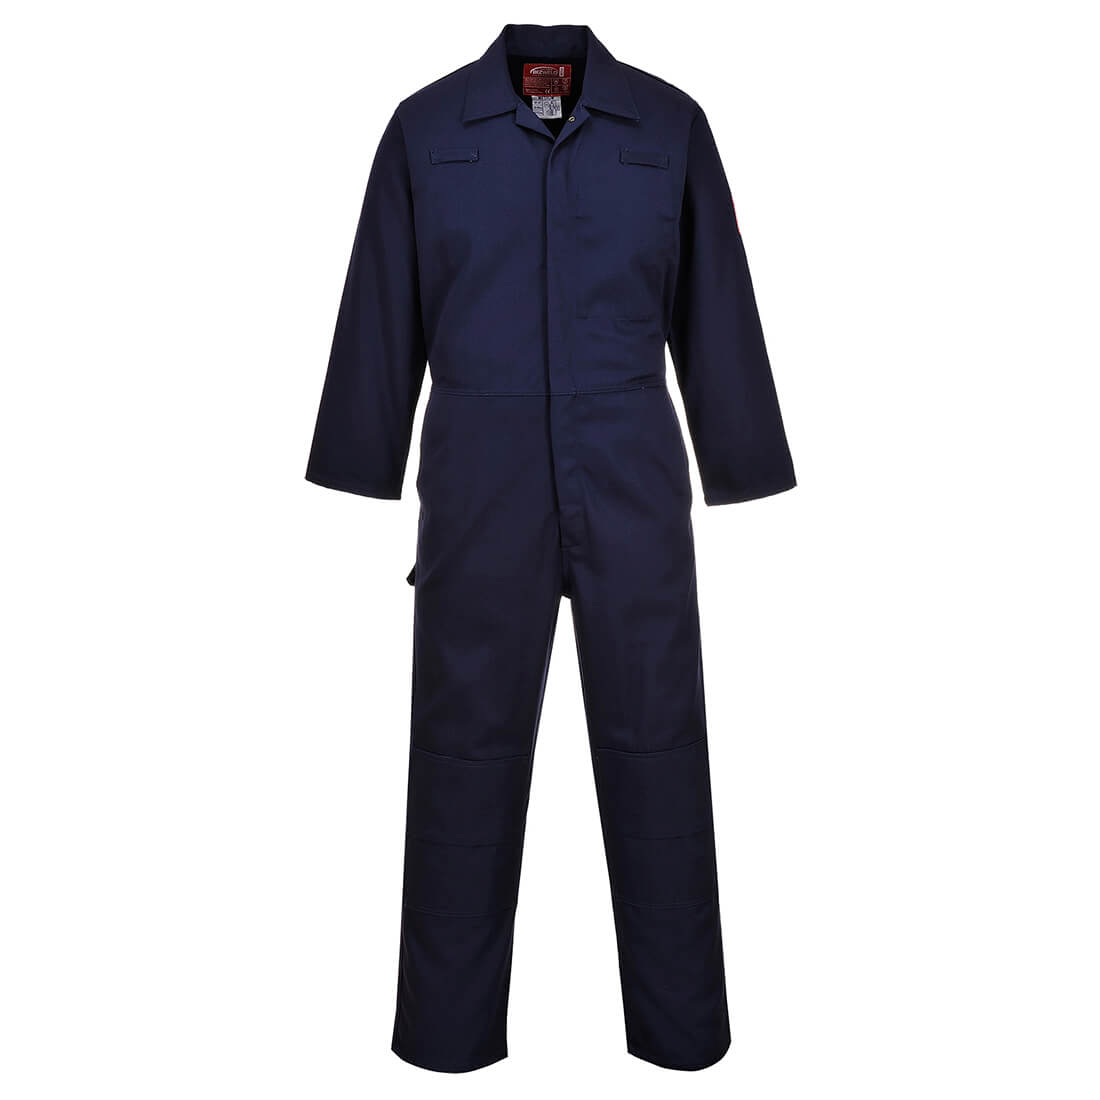 Image of Biz Weld Mens Flame Resistant Mole Skin Coverall Navy 2XL